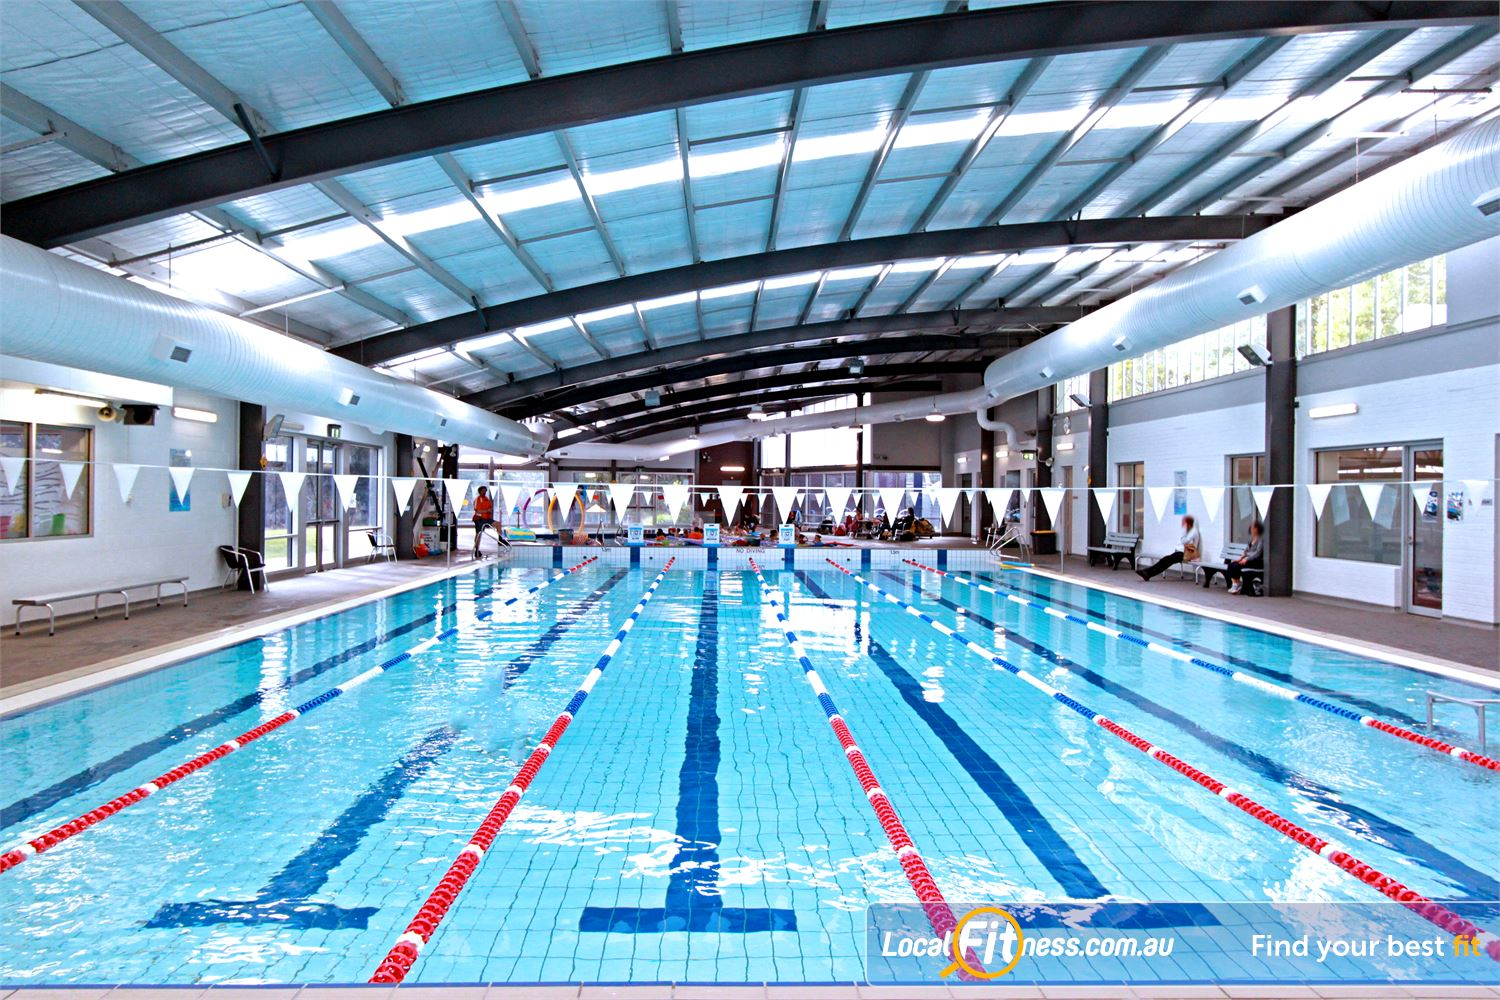 Monbulk Aquatic Centre Near Silvan Our swimming pool is perfect for lap swimming and squad programs.